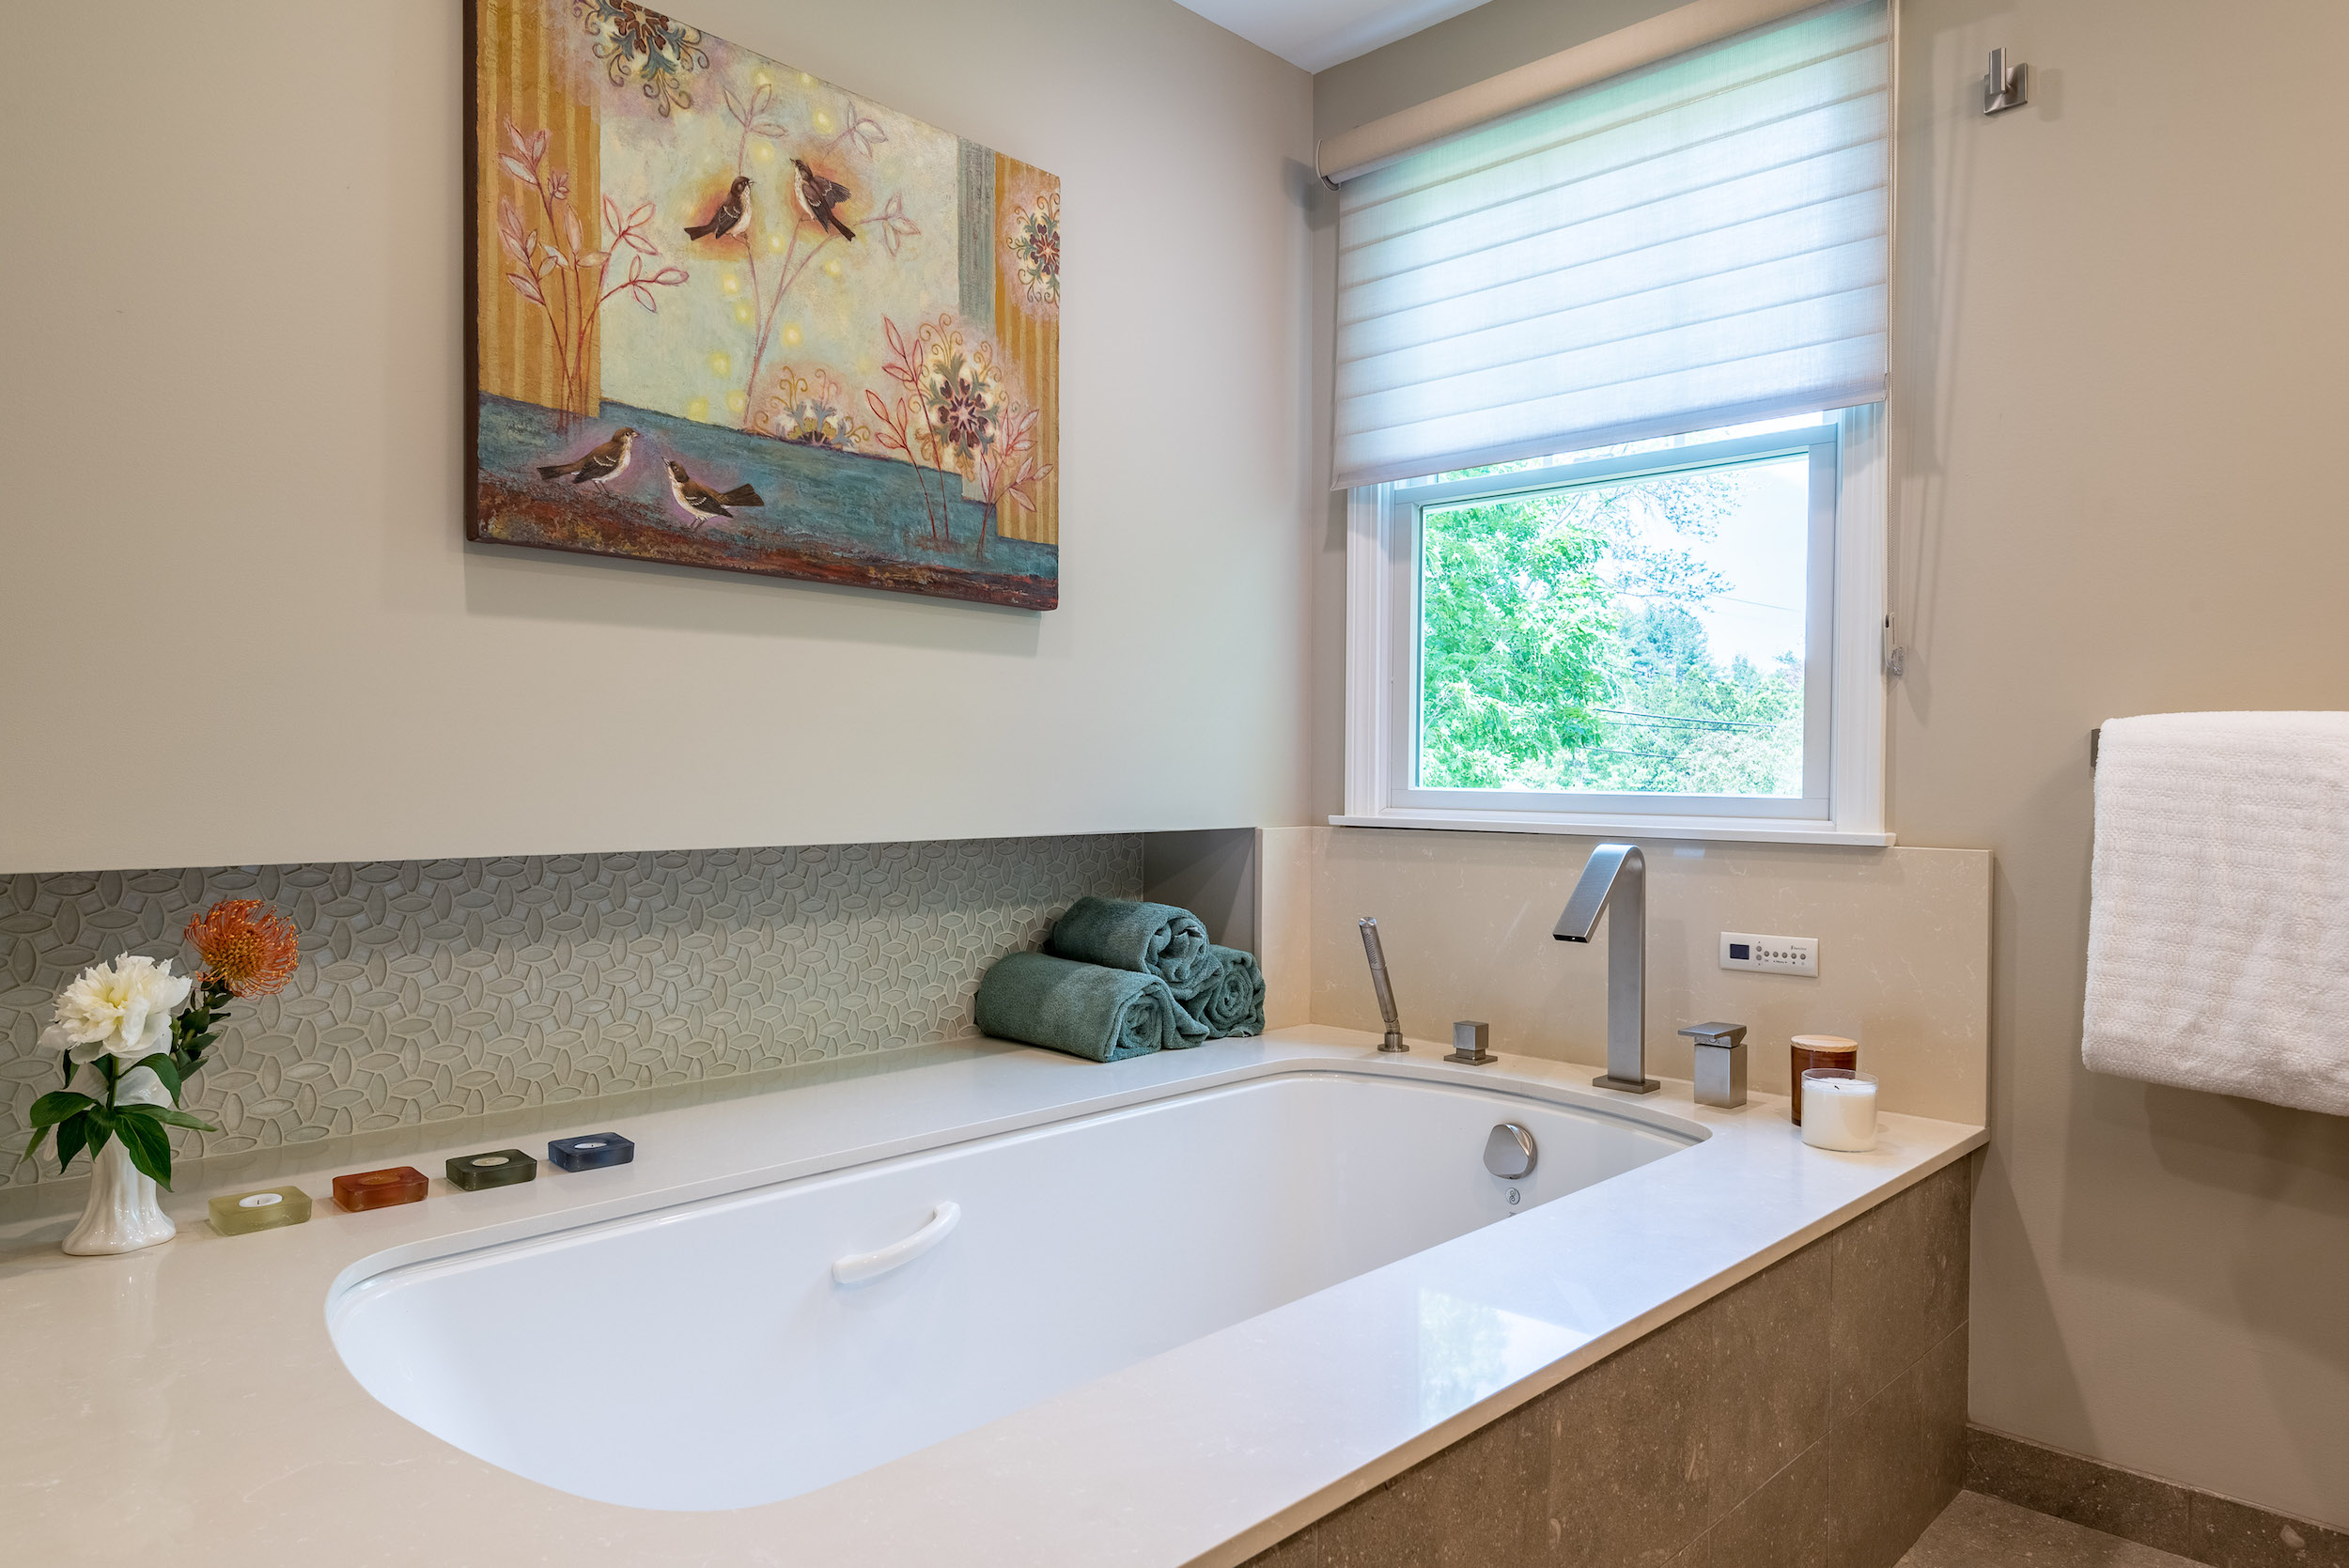 3-KitchenVisions-Master-Baths-Lincoln-2.jpg